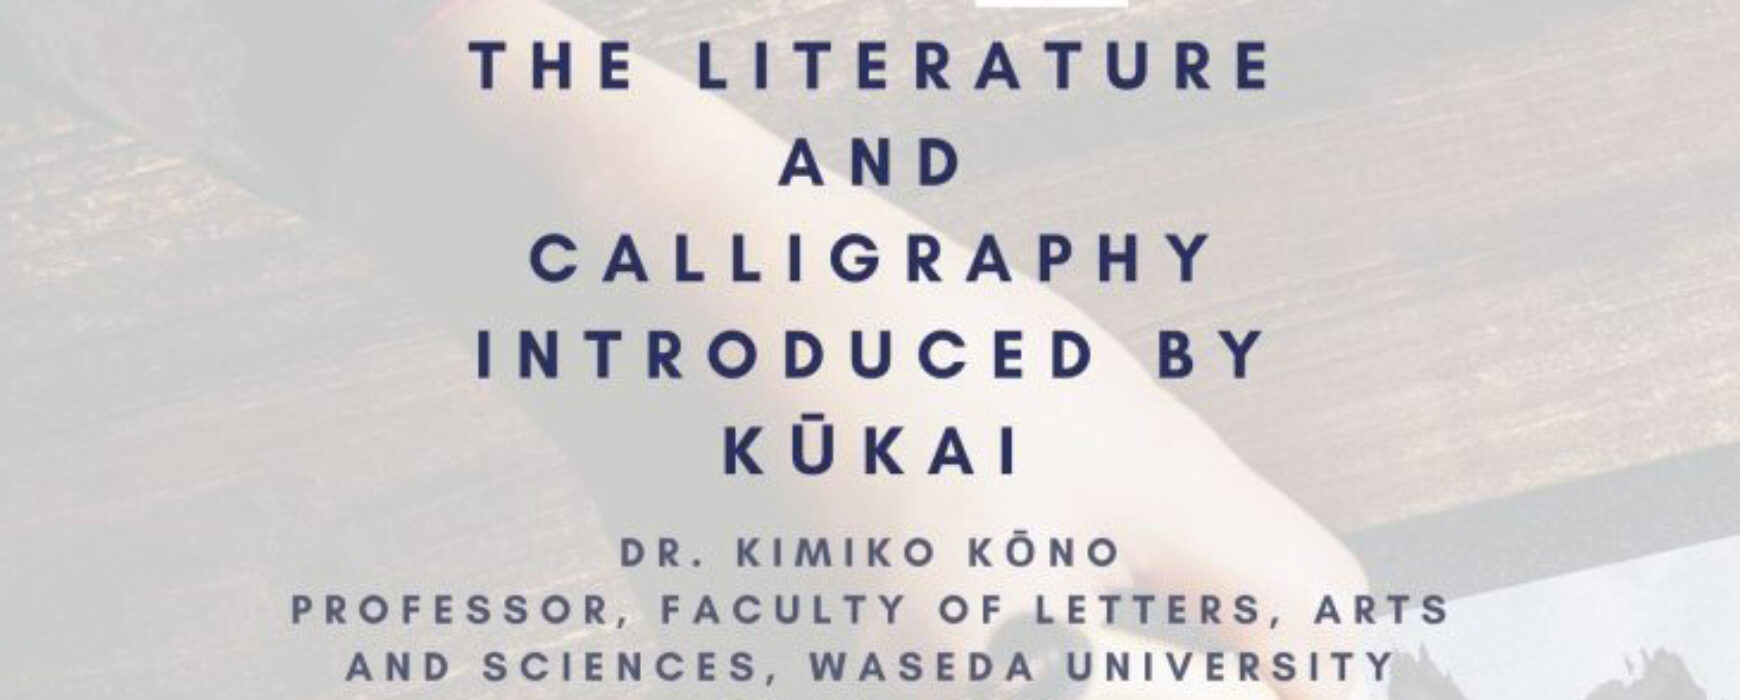 The Literature and Calligraphy Introduced by Kūkai